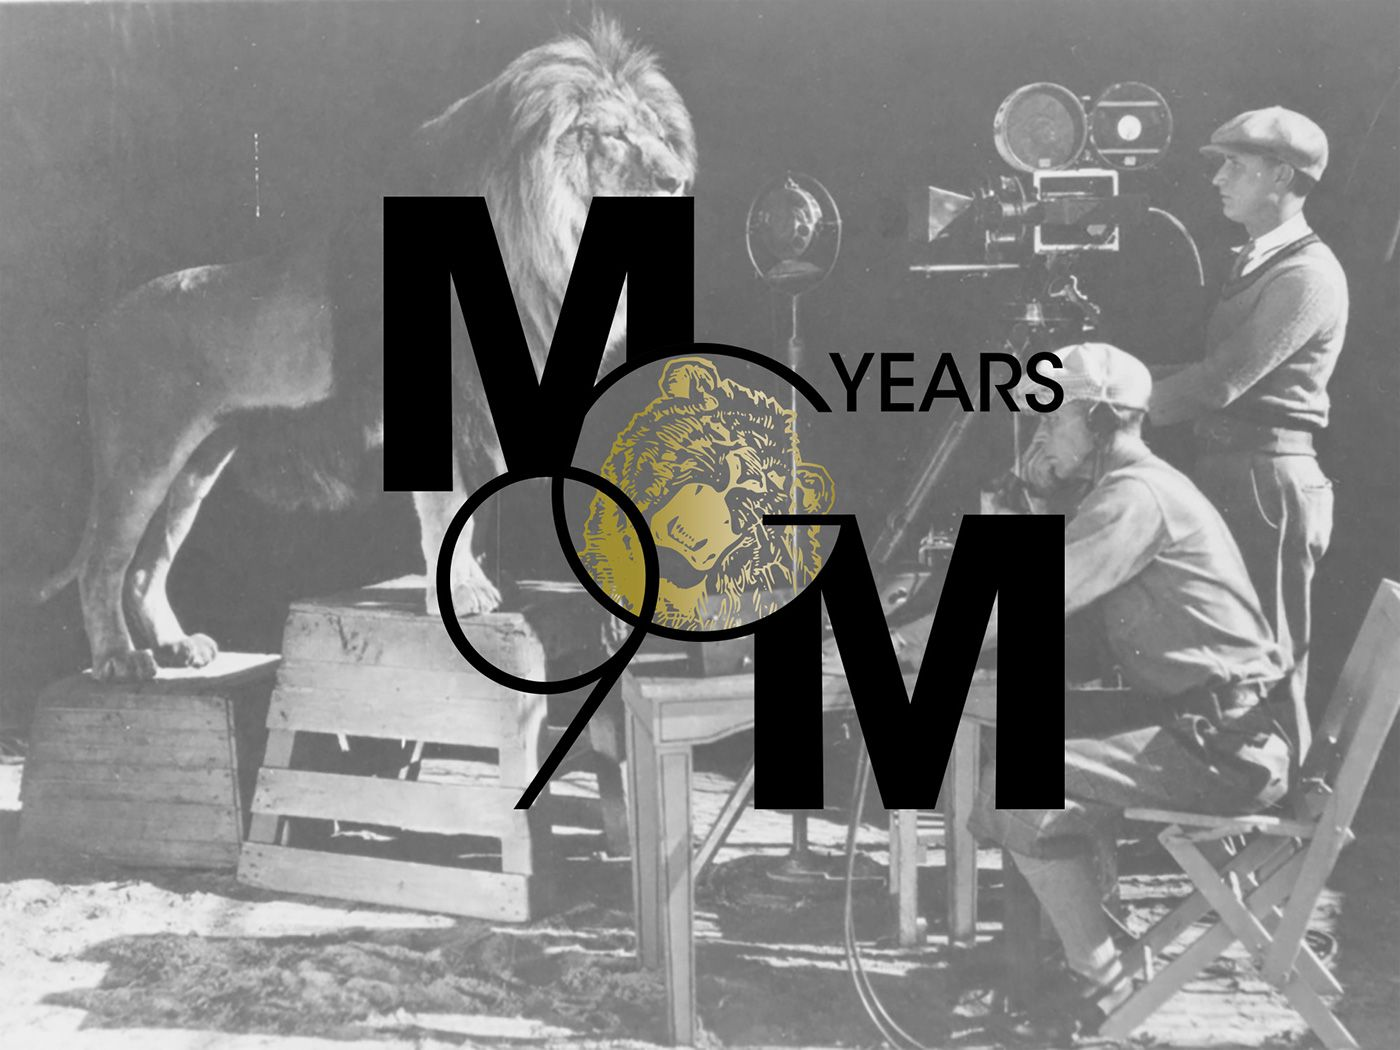 Logo and stationery creation exercise for Metro Goldwyn Mayer Studios 90th anniversary.